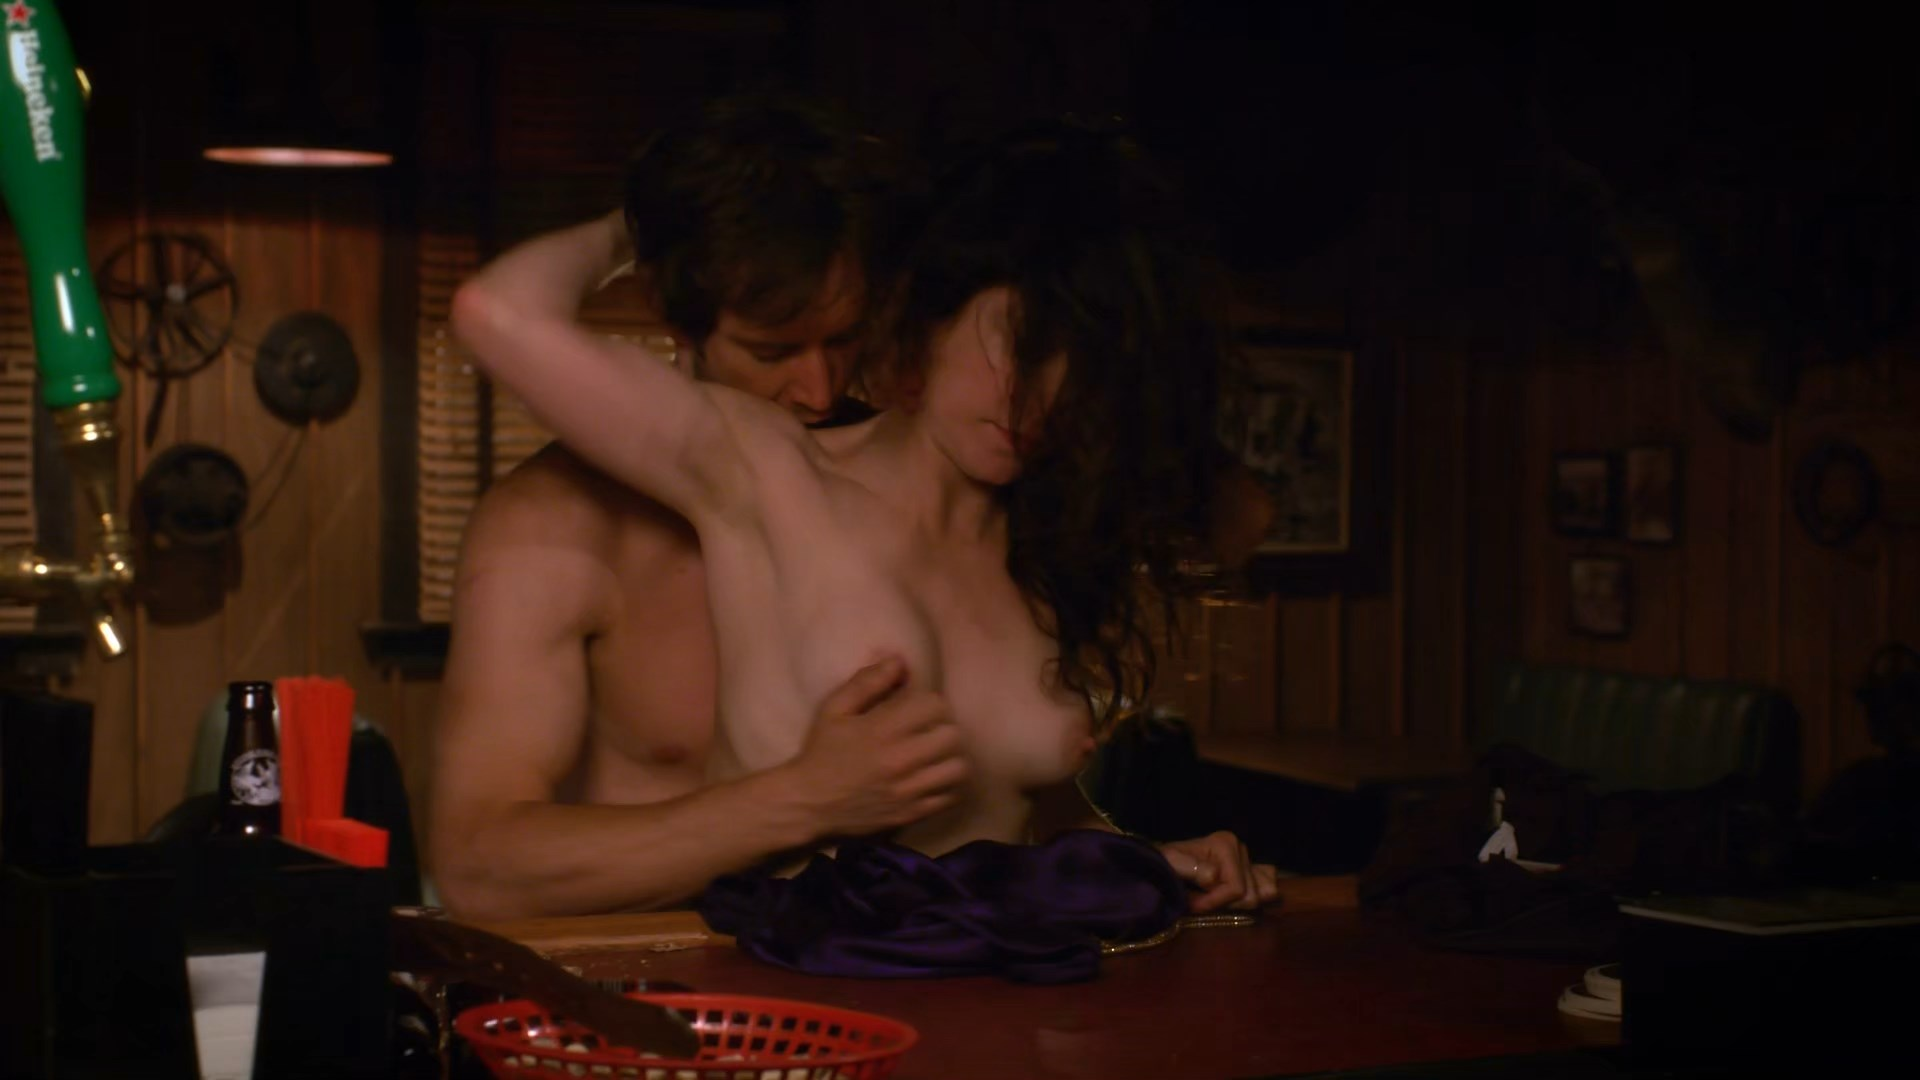 Nancy botwin nude pictures 3